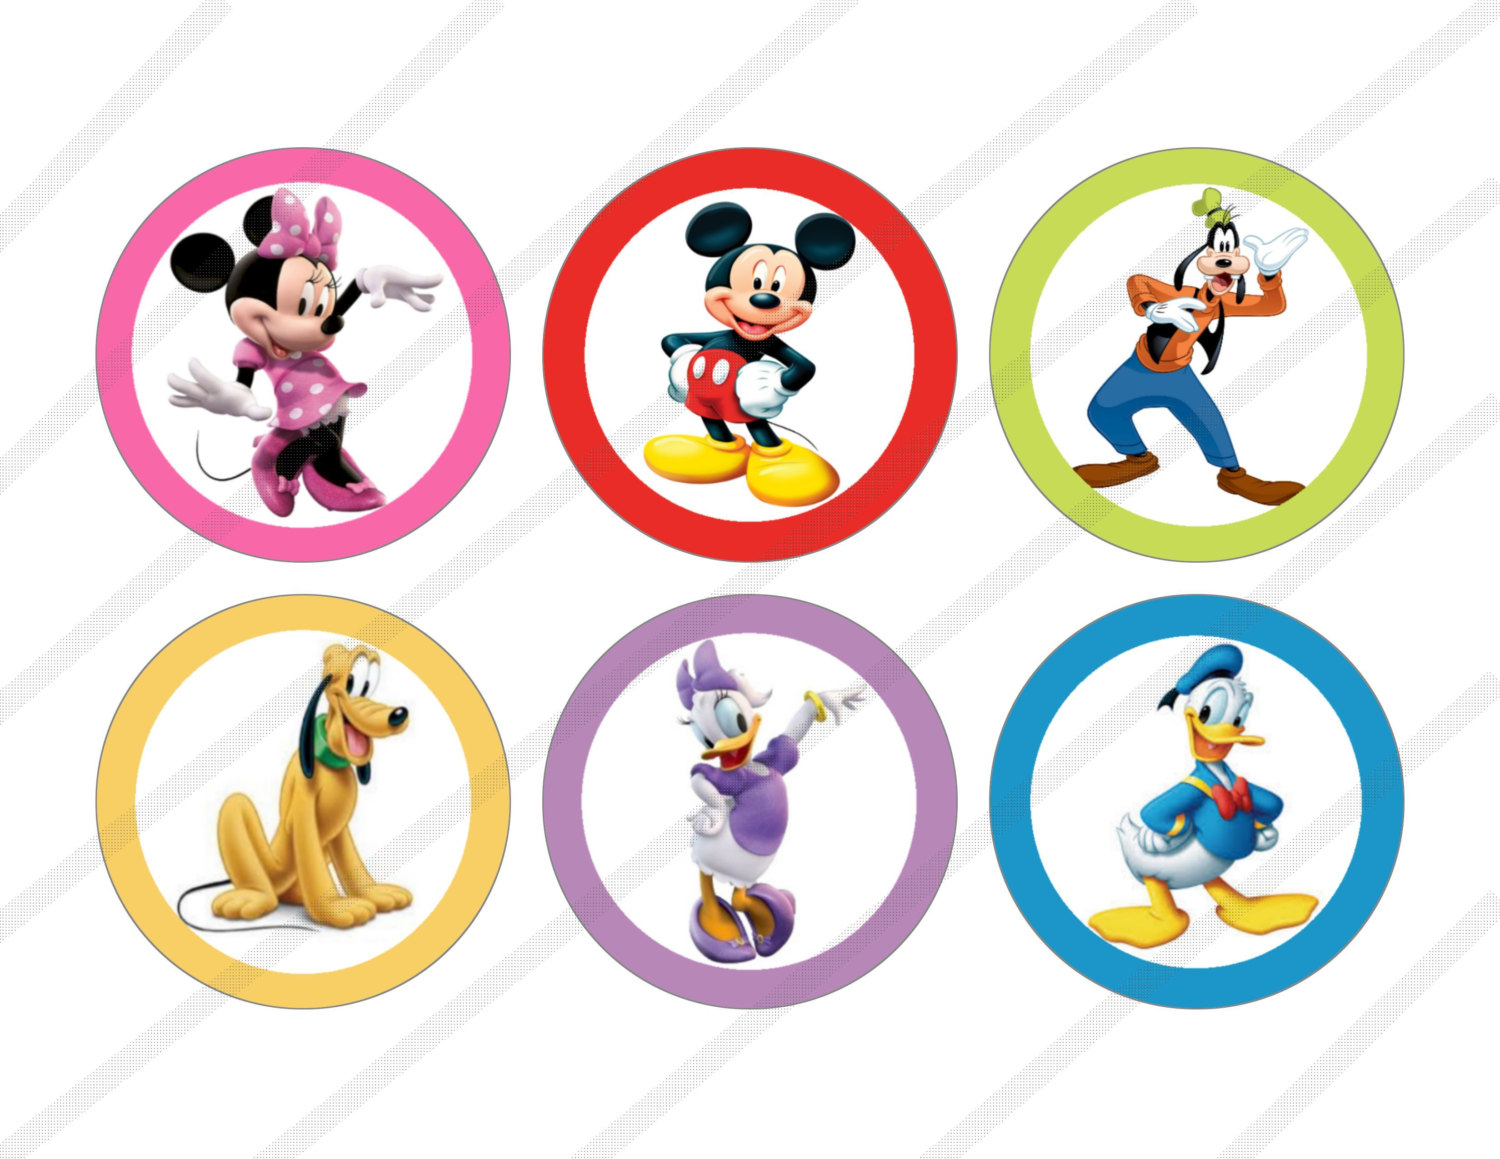 Logo clipart mickey mouse clubhouse #12